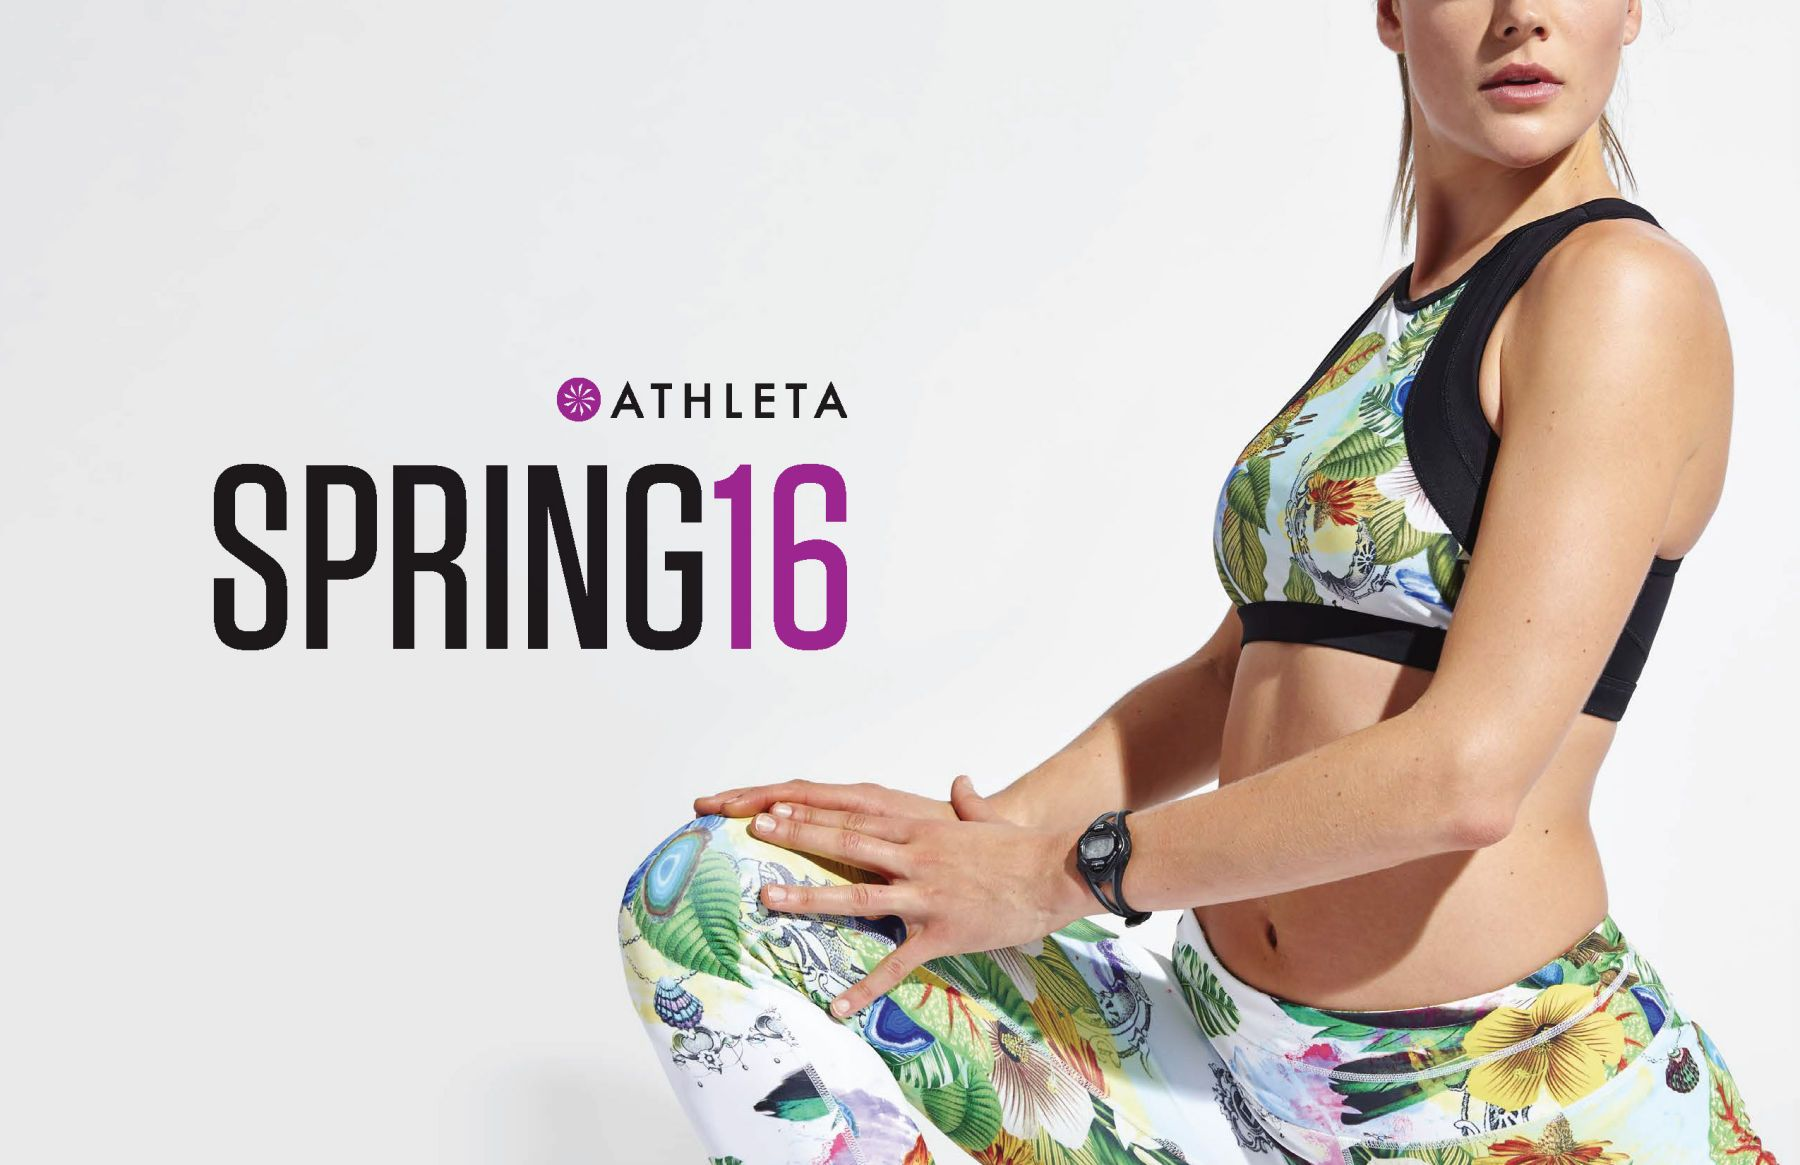 1athleta_lookbook_final_page_01.jpg